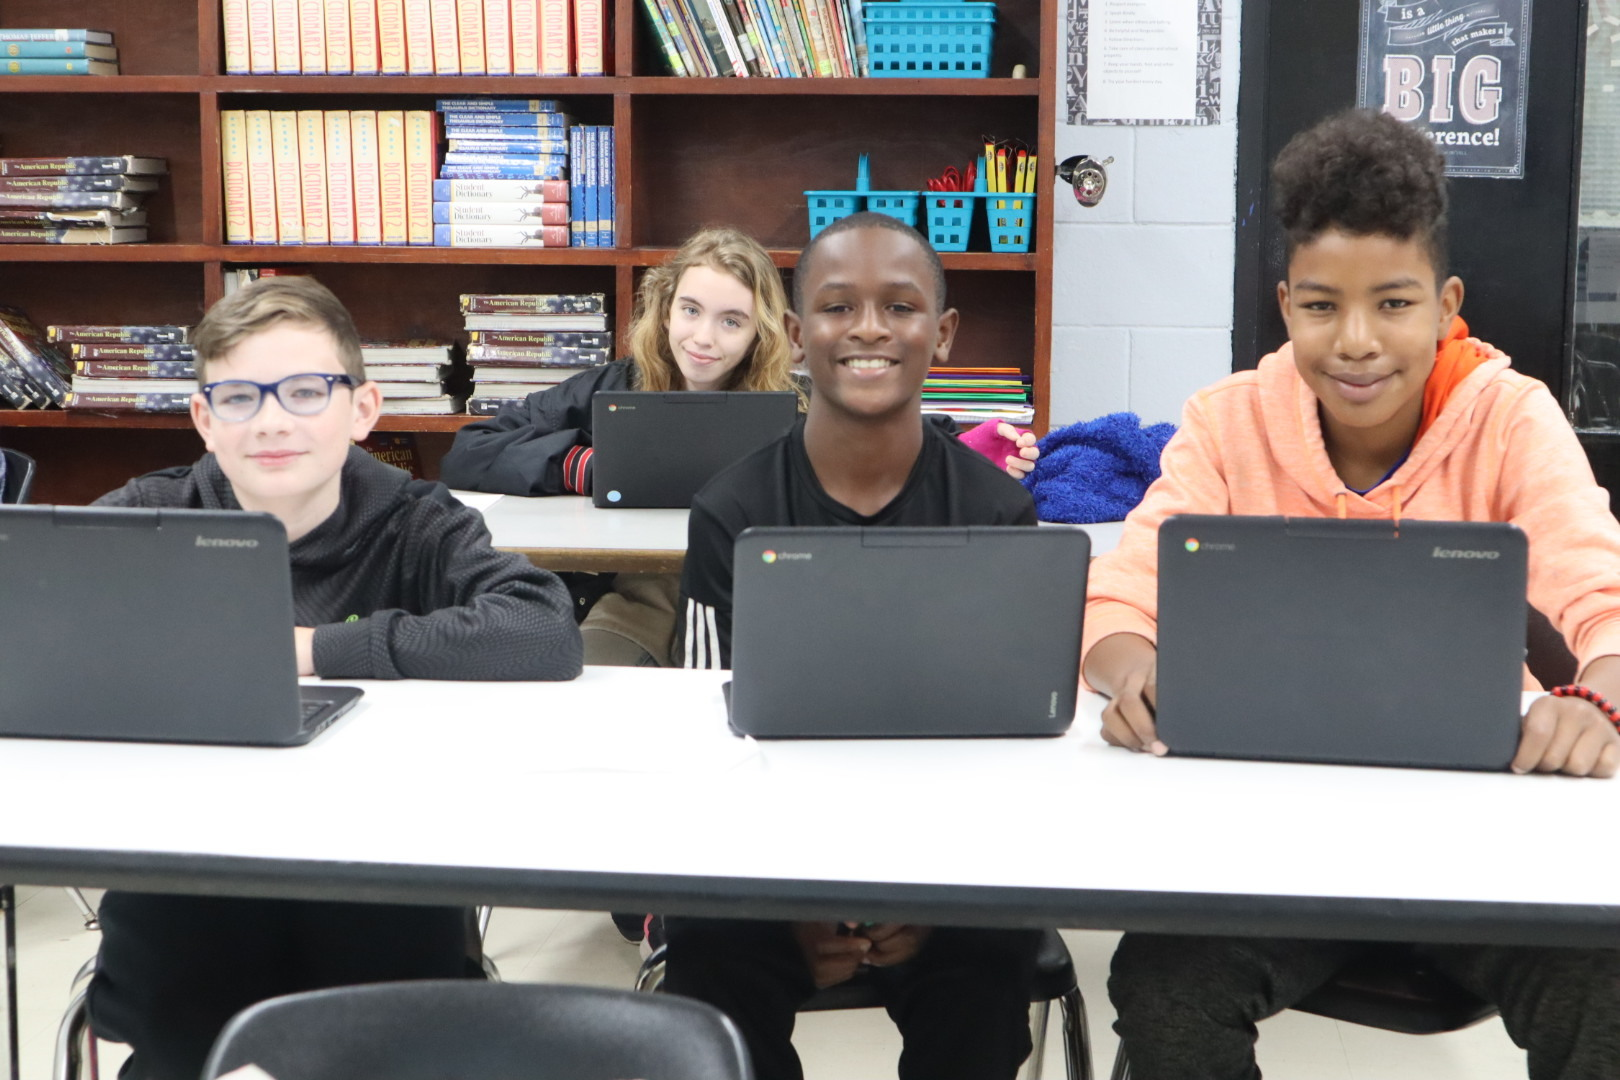 Marshall Woods, Cordavious Hankins, & Trevon Jumper all enjoy working on their Chromebooks